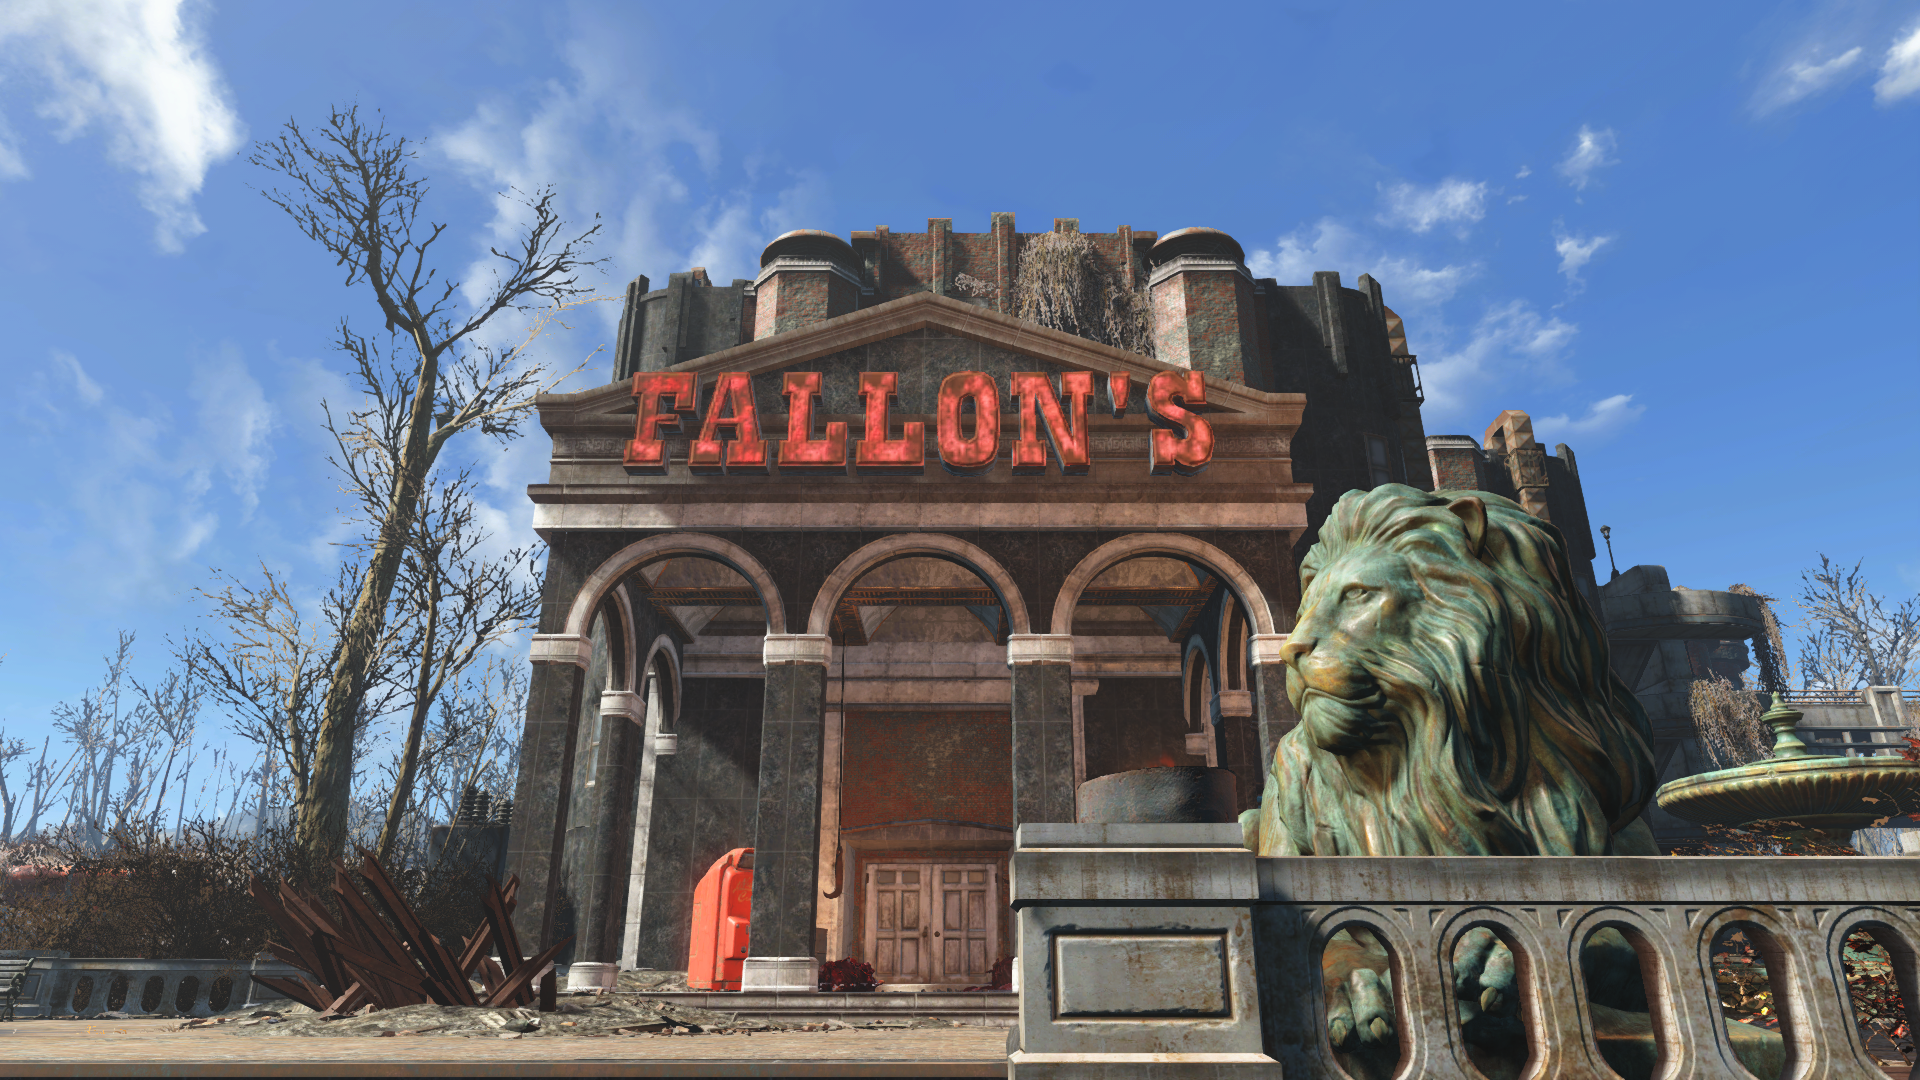 Fallons department store Fallout Wiki FANDOM powered by Wikia